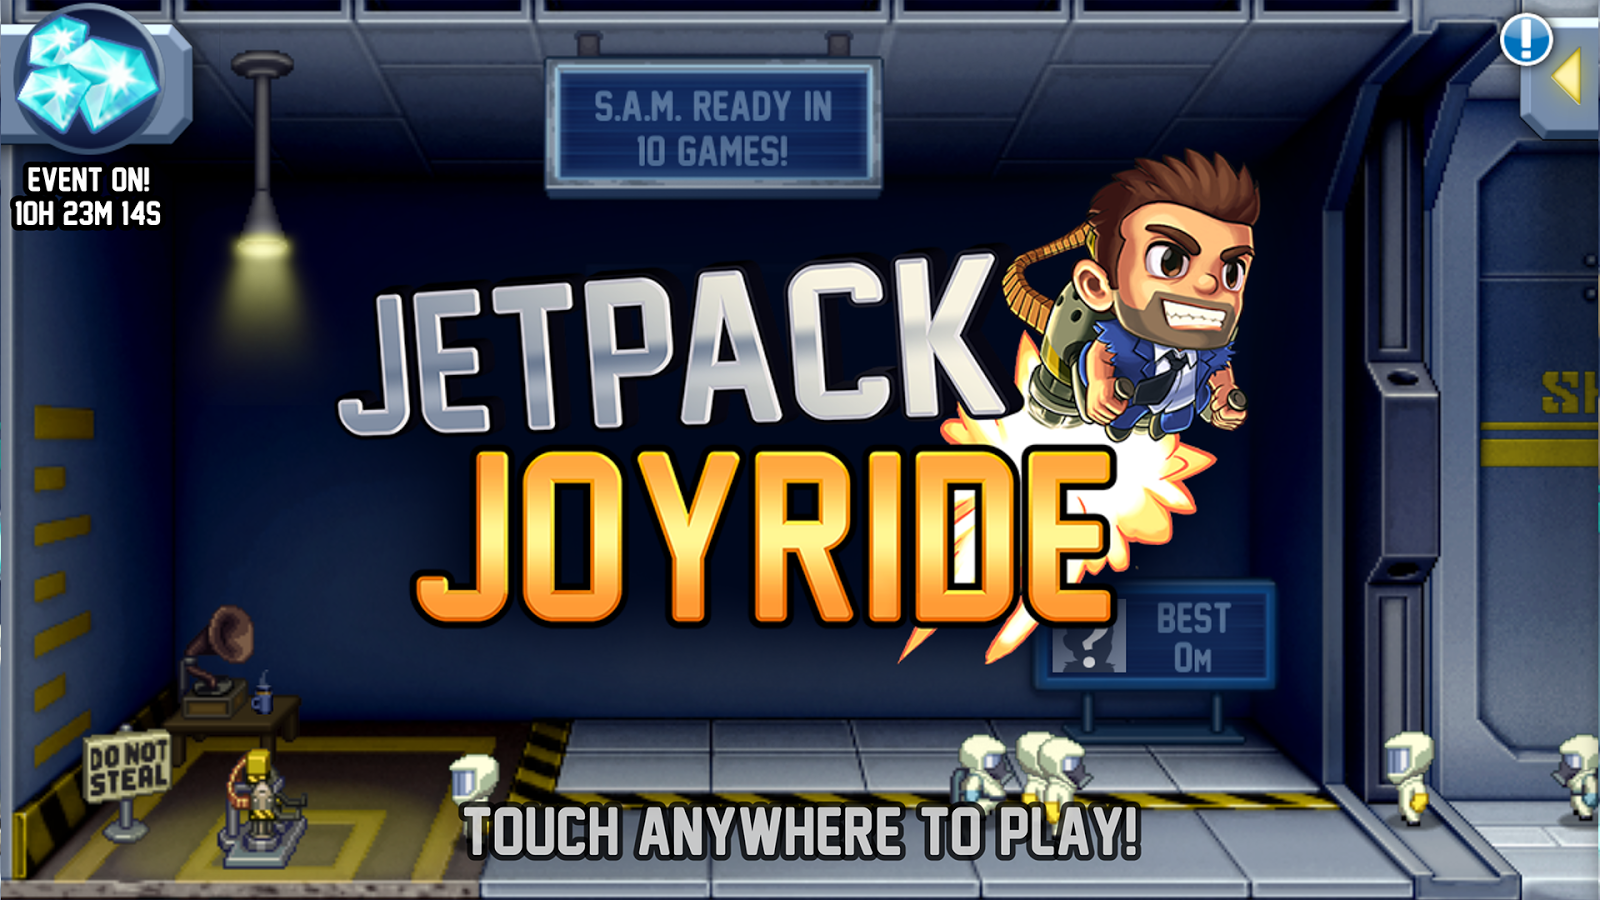 jetpack joyride iPhone game